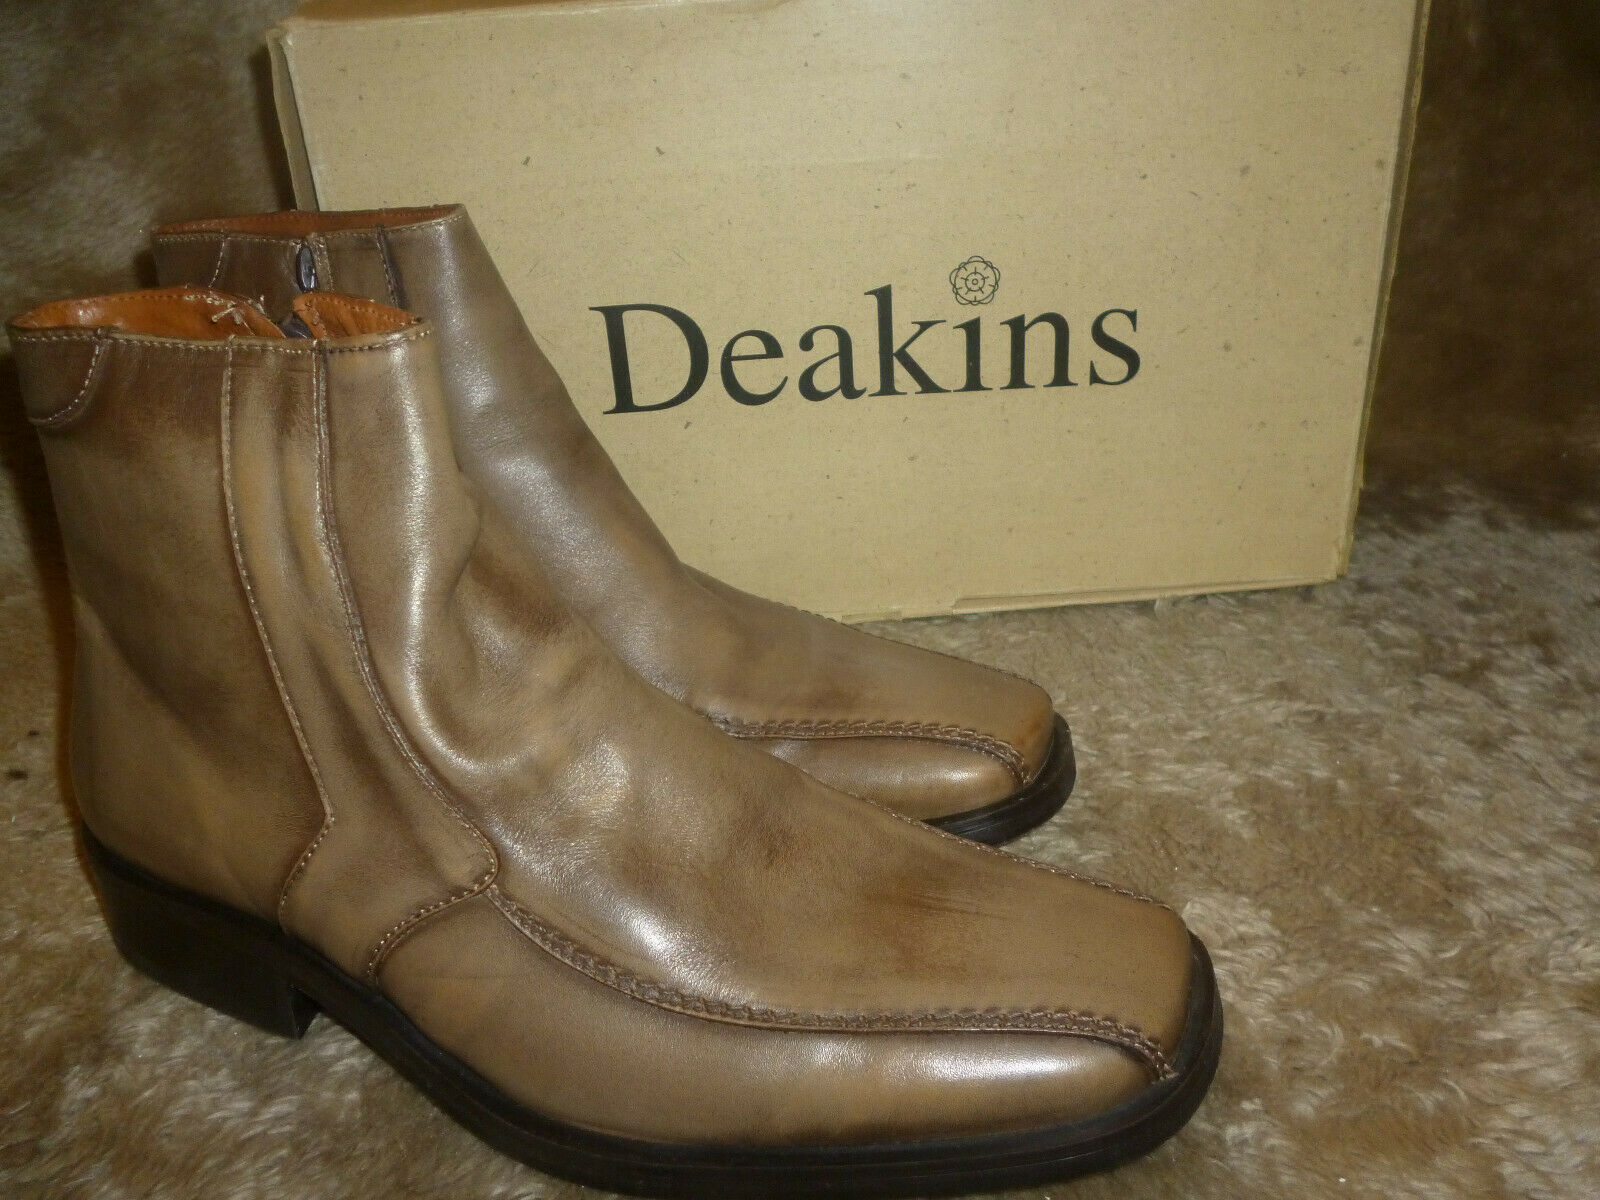 MEN'S SOFT LEATHER BOOTS  DEAKINS  190 EURO